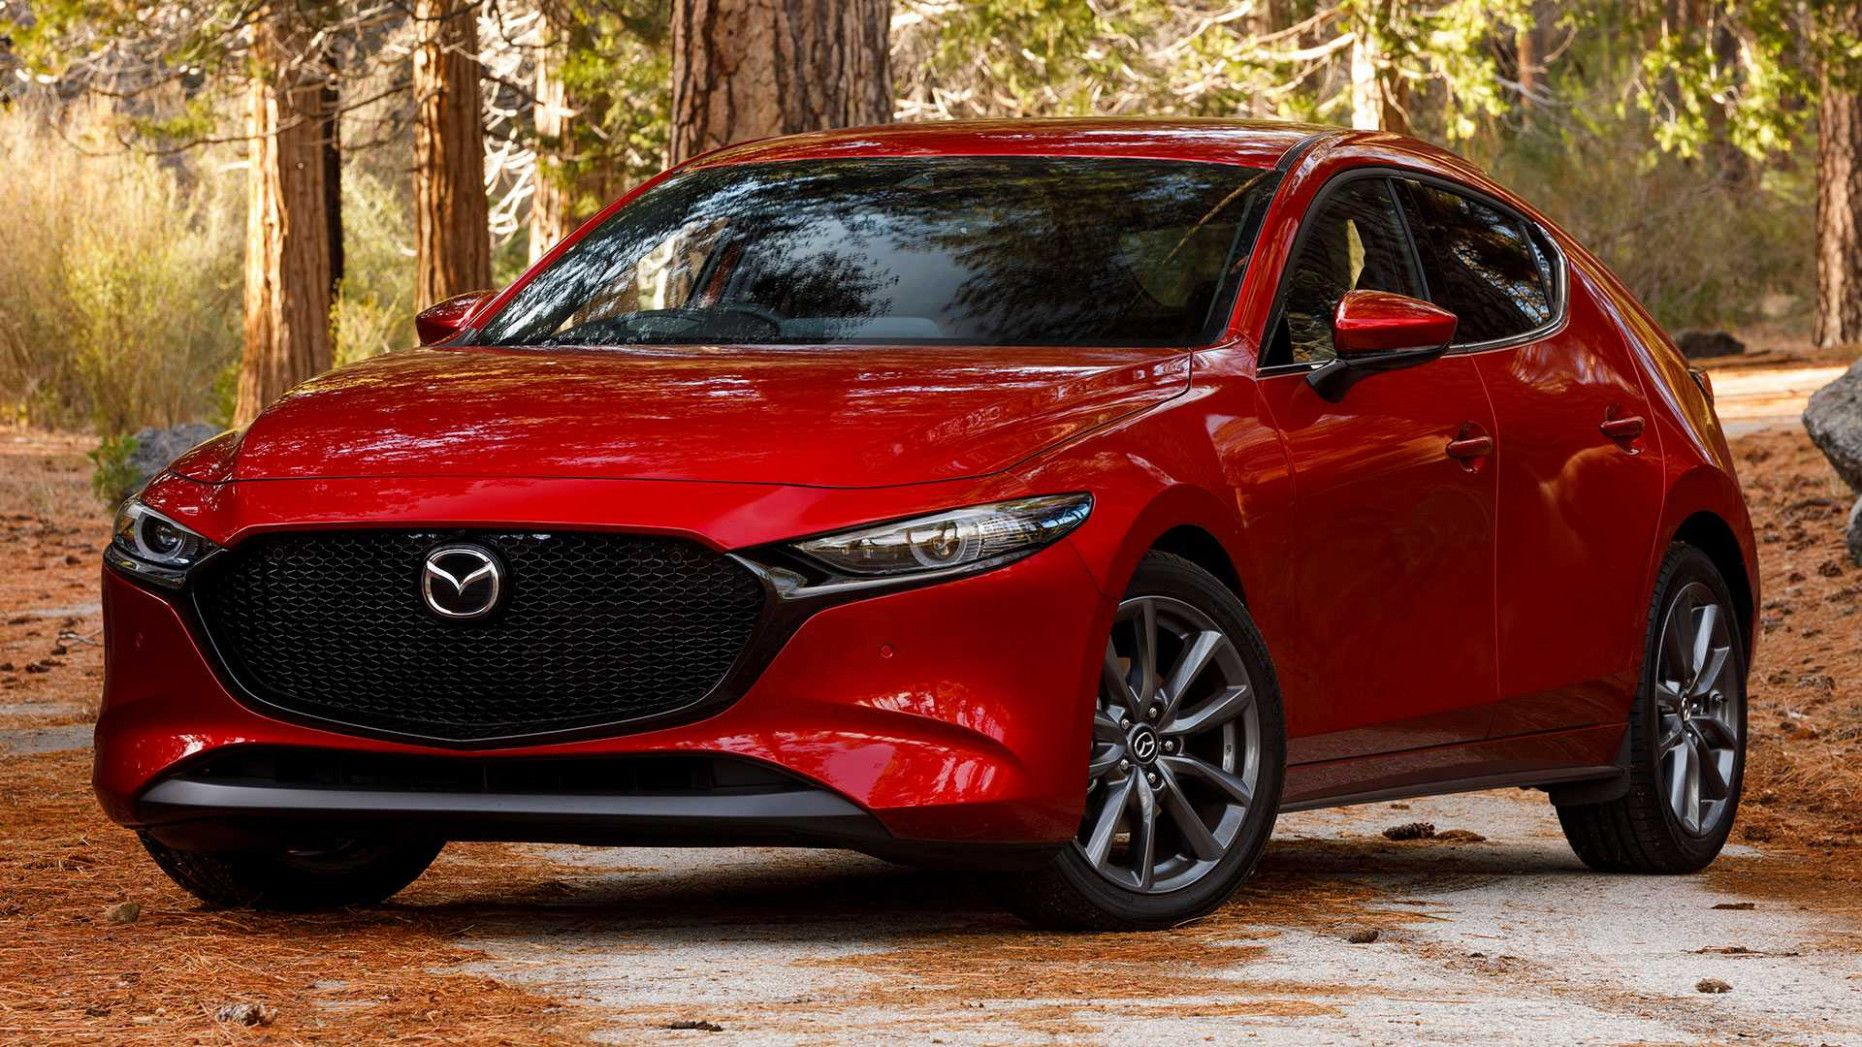 The 10 Secrets About 2020 Mazda 3 Hatchback Only A Handful Of People Know Mazda Mazda 3 Hatchback Hatchback